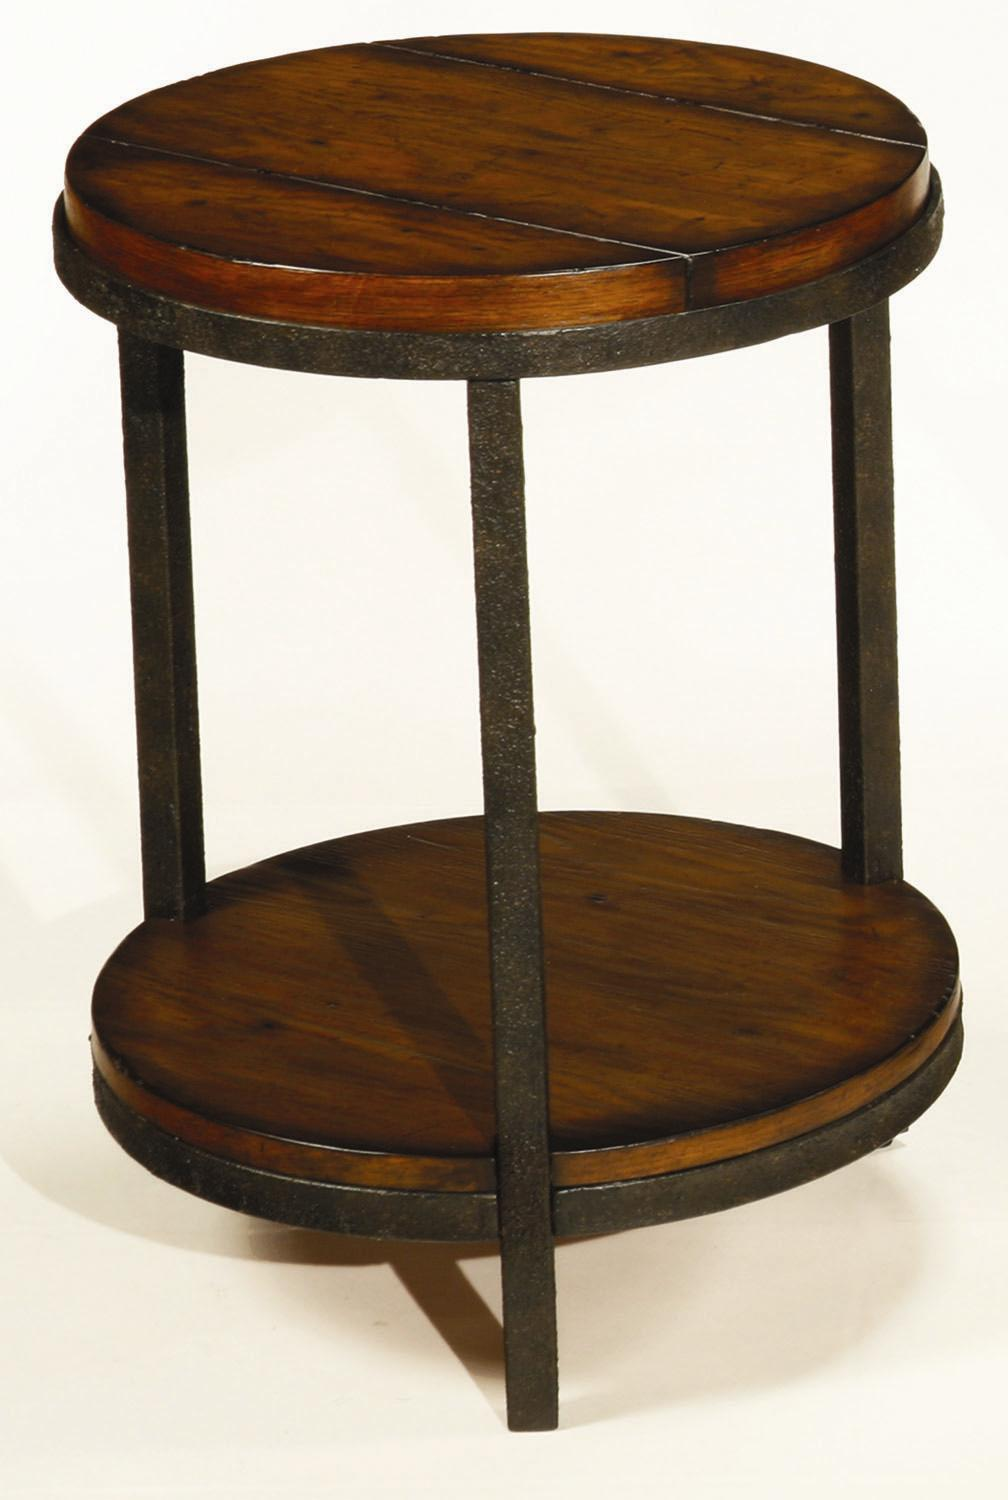 Round end table with shelf by hammary wolf and gardiner